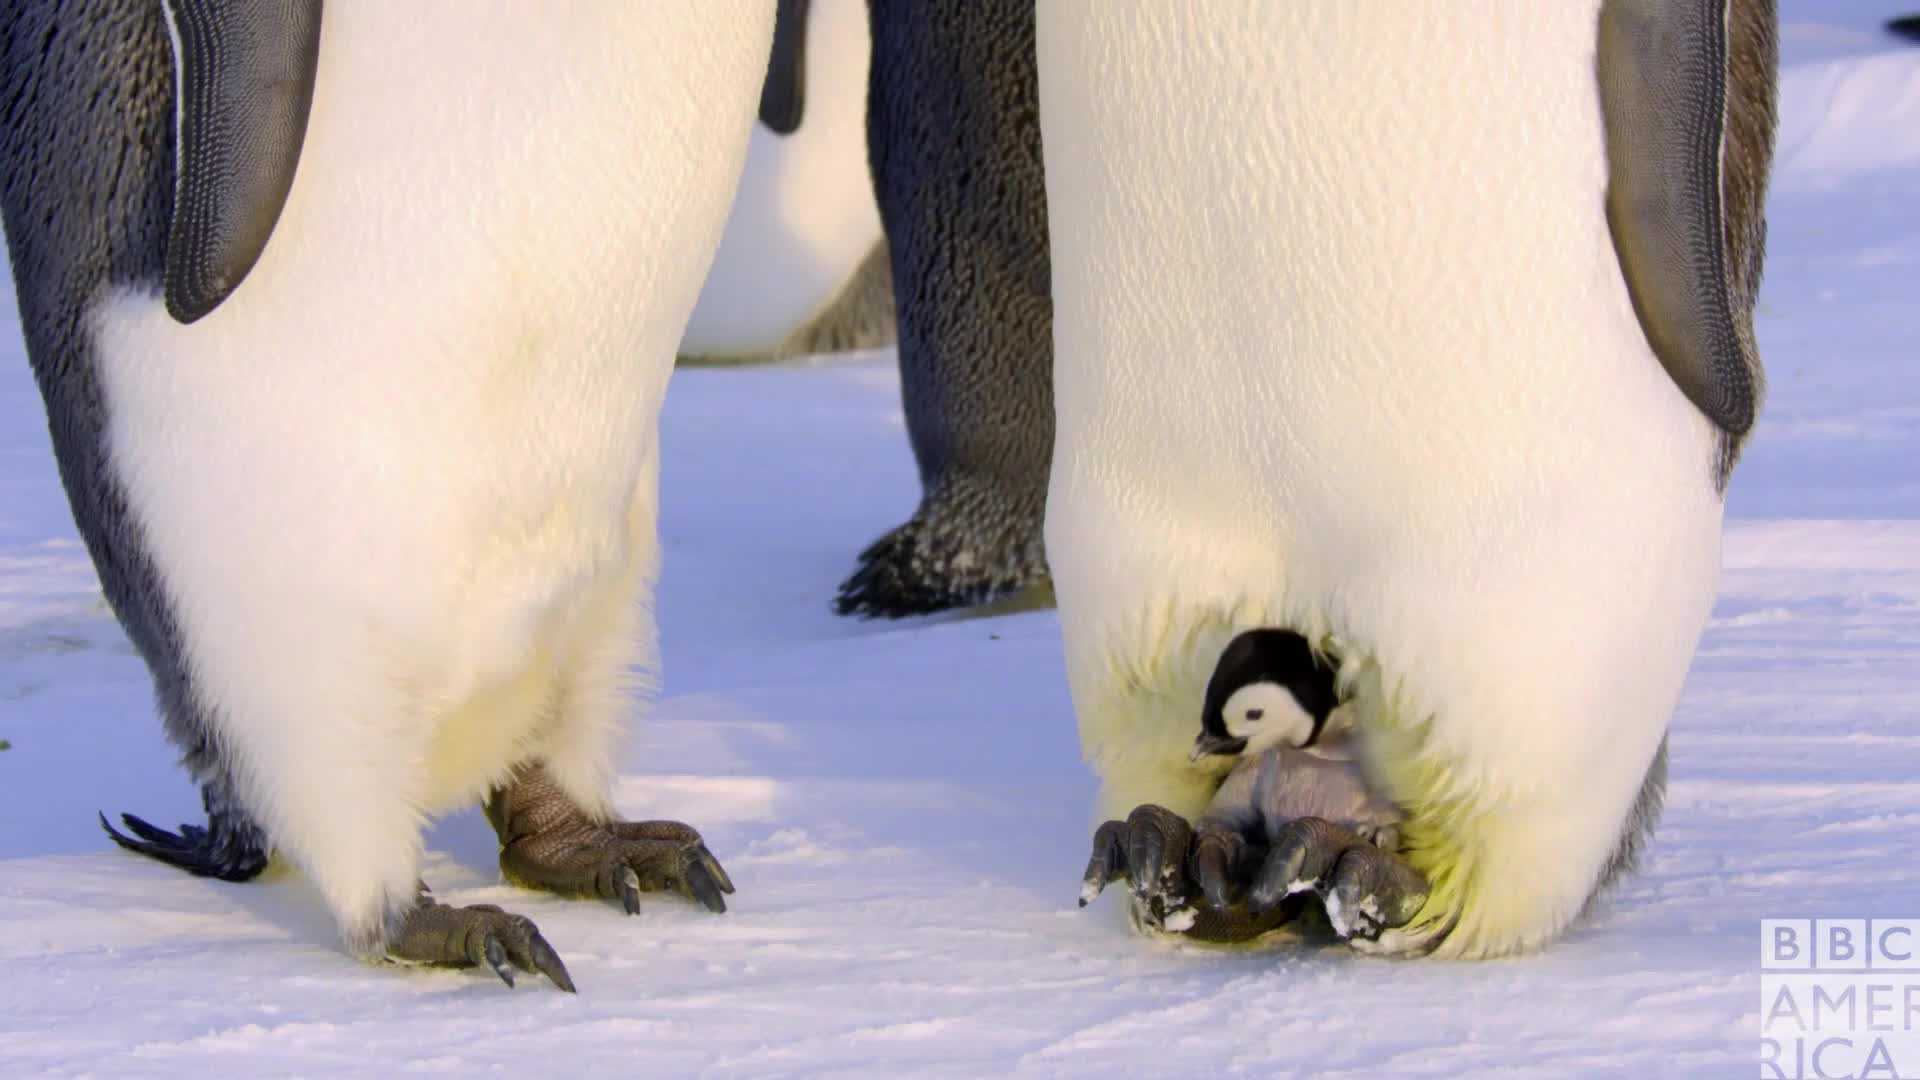 animal, animals, bbc america, bbc america dynasties, bbc america: dynasties, cute, dynasties, emperor penguin, emperor penguins, family, hug, kisses, love, penguin, penguins, Dynasties Happy Penguin Family GIFs